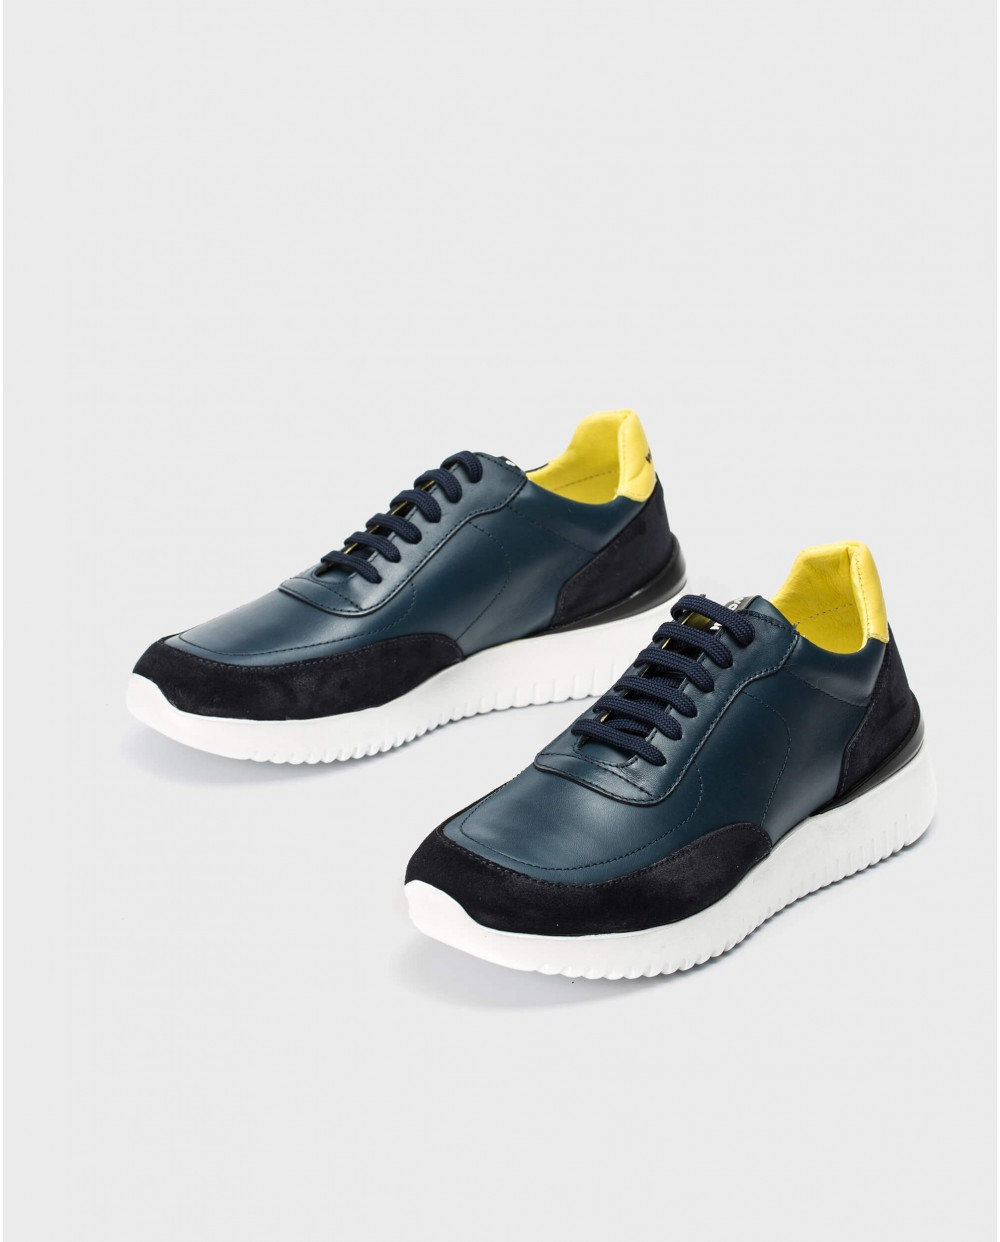 Wonders-Sneakers-Leather sneaker with shoelaces